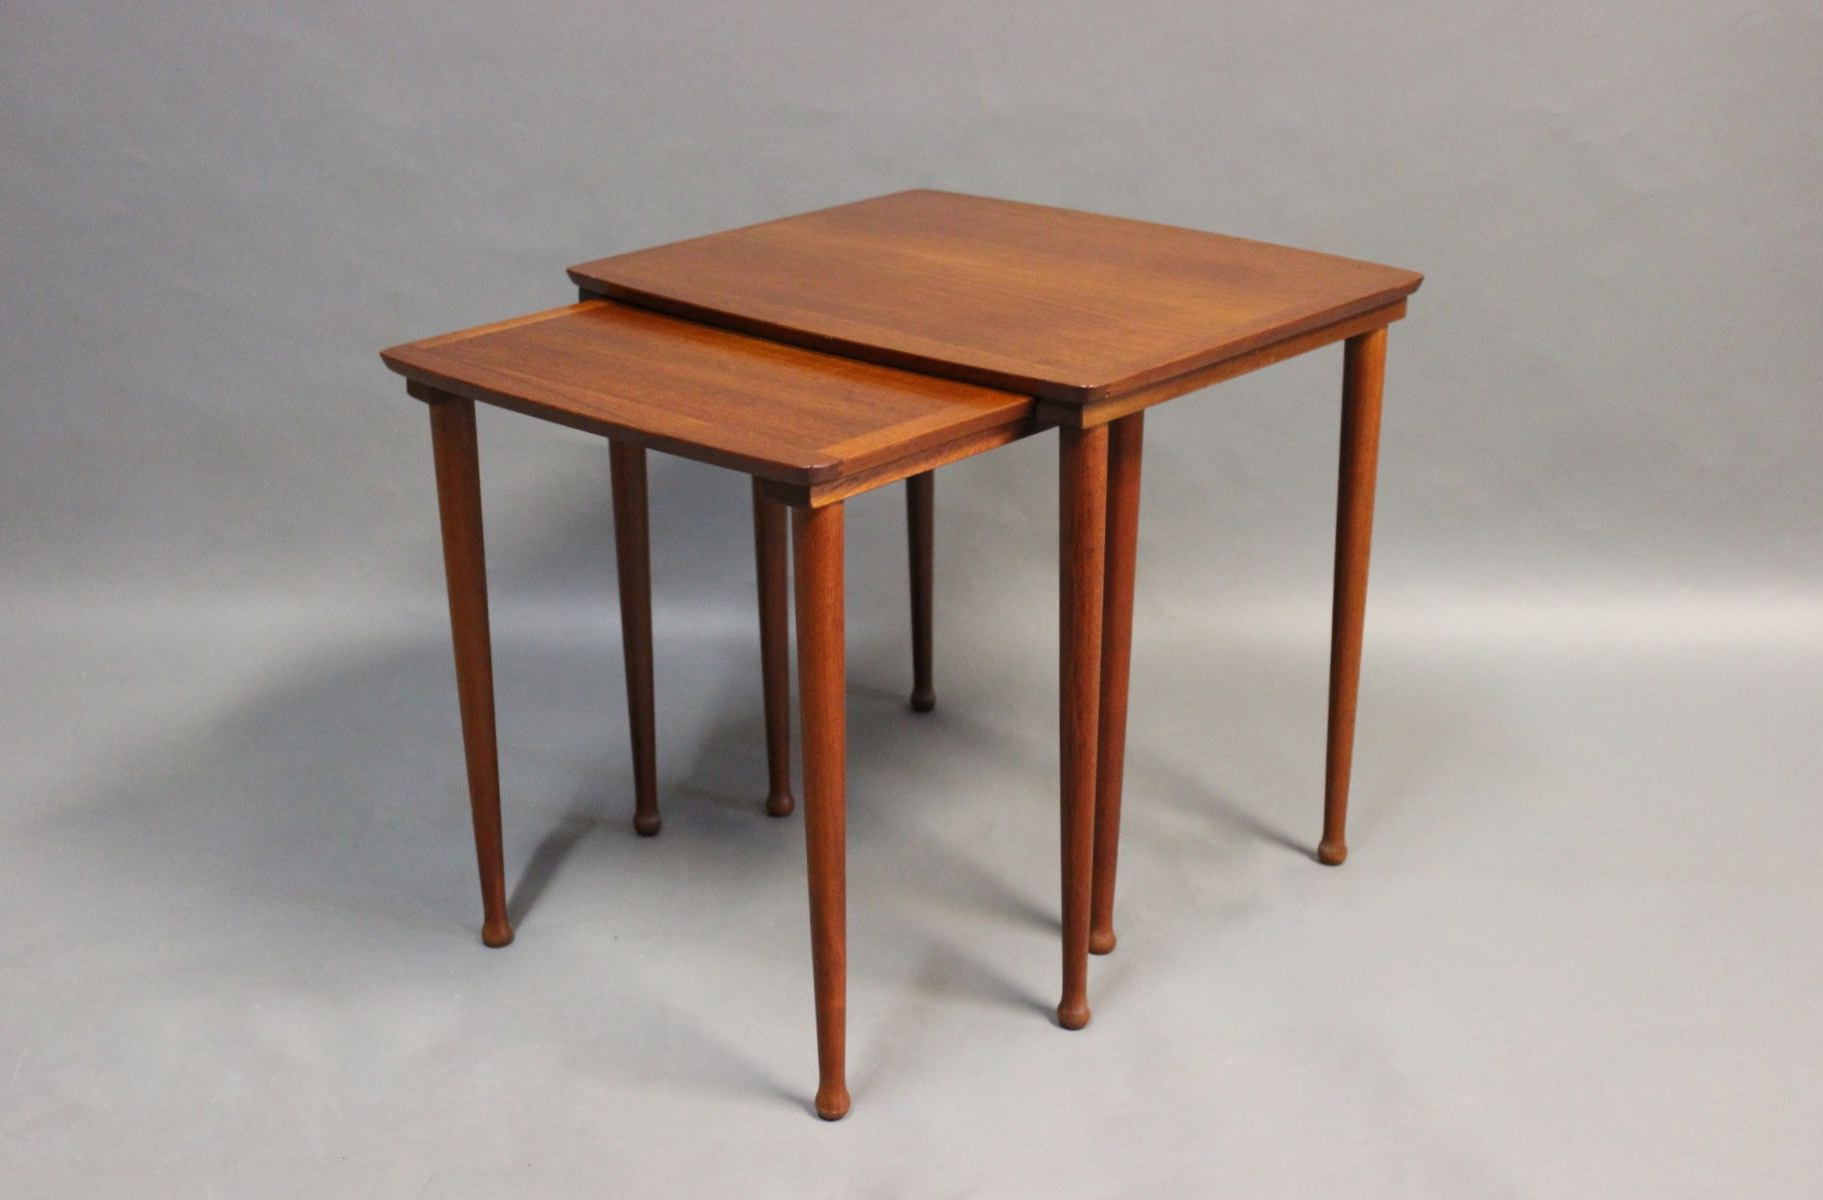 Teak Nesting Tables From Møbelintarsia, 1960s For Sale At Pamono Regarding Intarsia Console Tables (View 19 of 20)